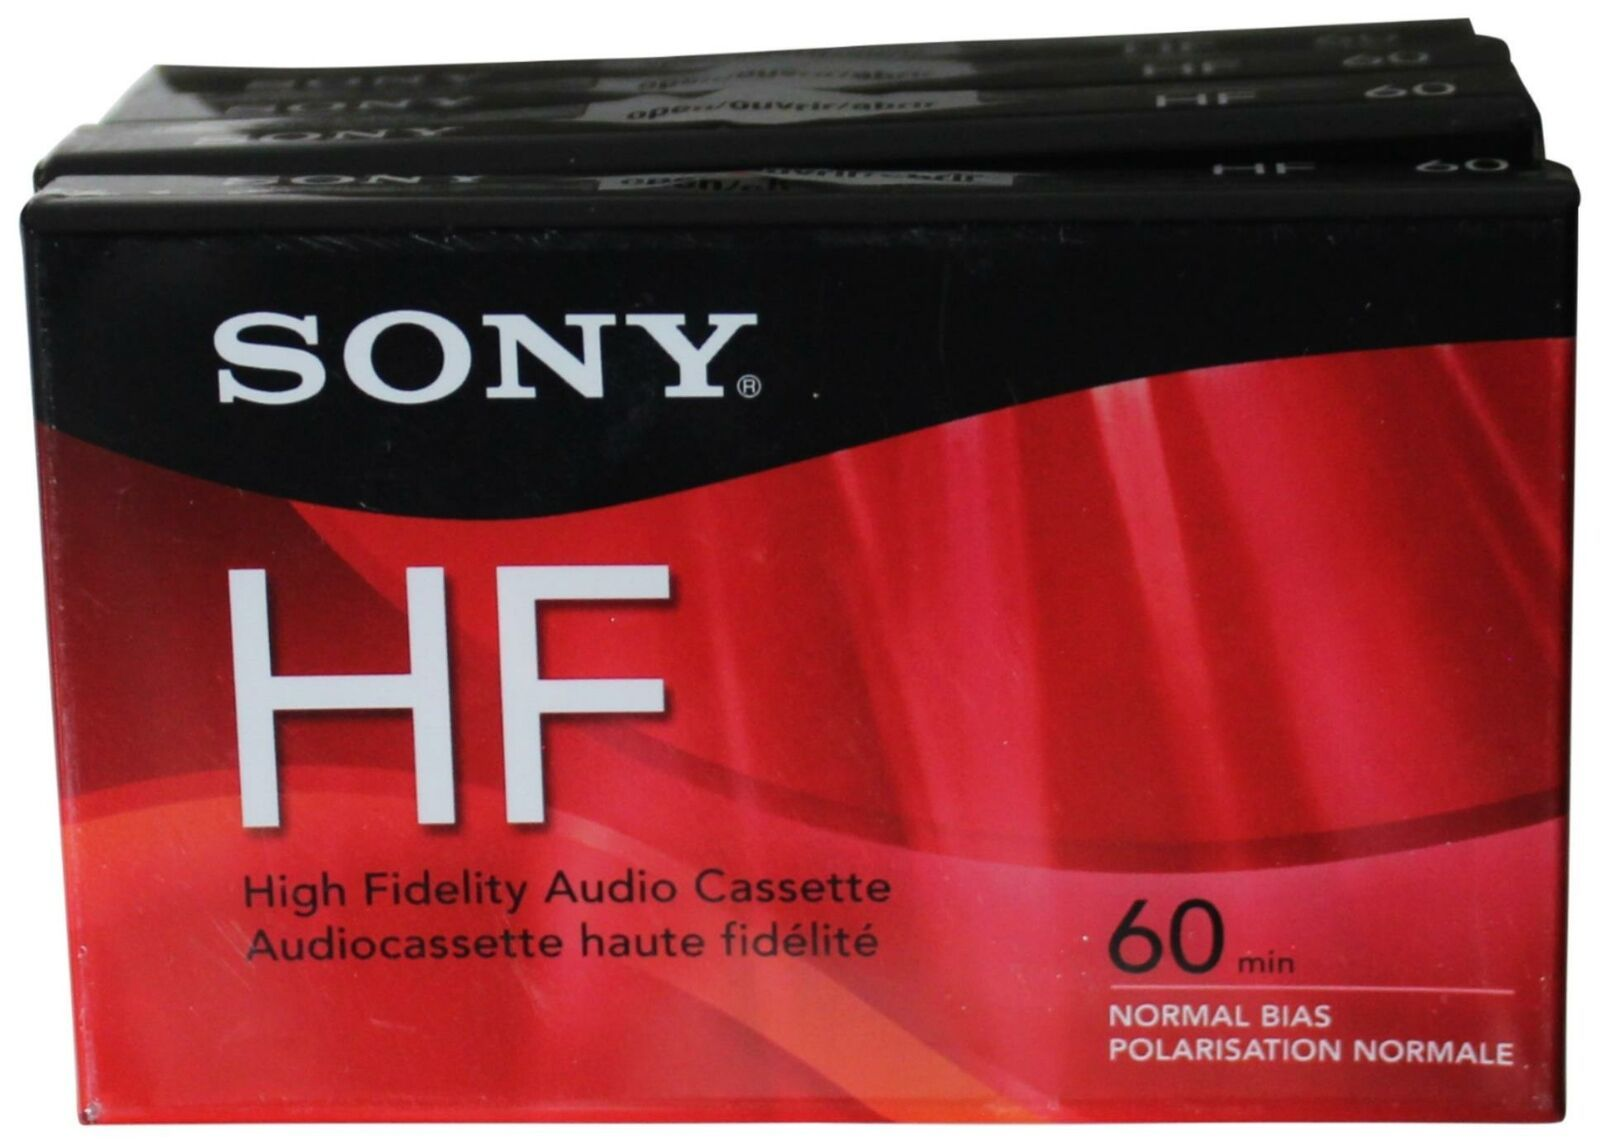 LOT Of 4 BLANK CASSETTE TAPES All Sealed NEW Sony HF 60 Minutes Mins Normal Bias - $18.69